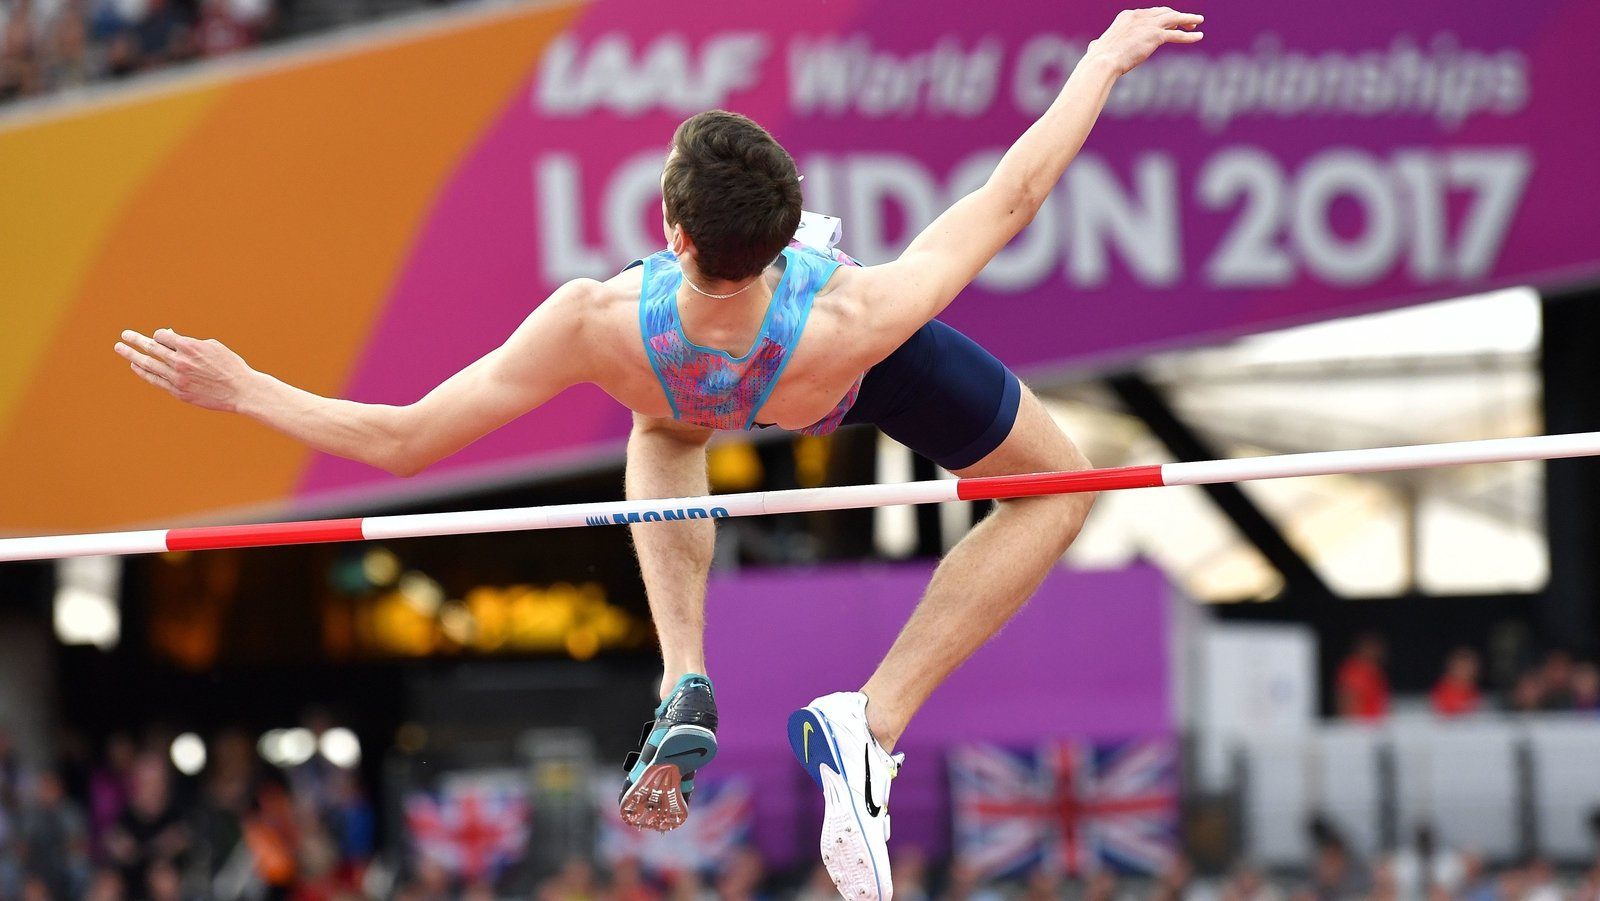 Treacy: Russia ban 'important for integrity of sport'